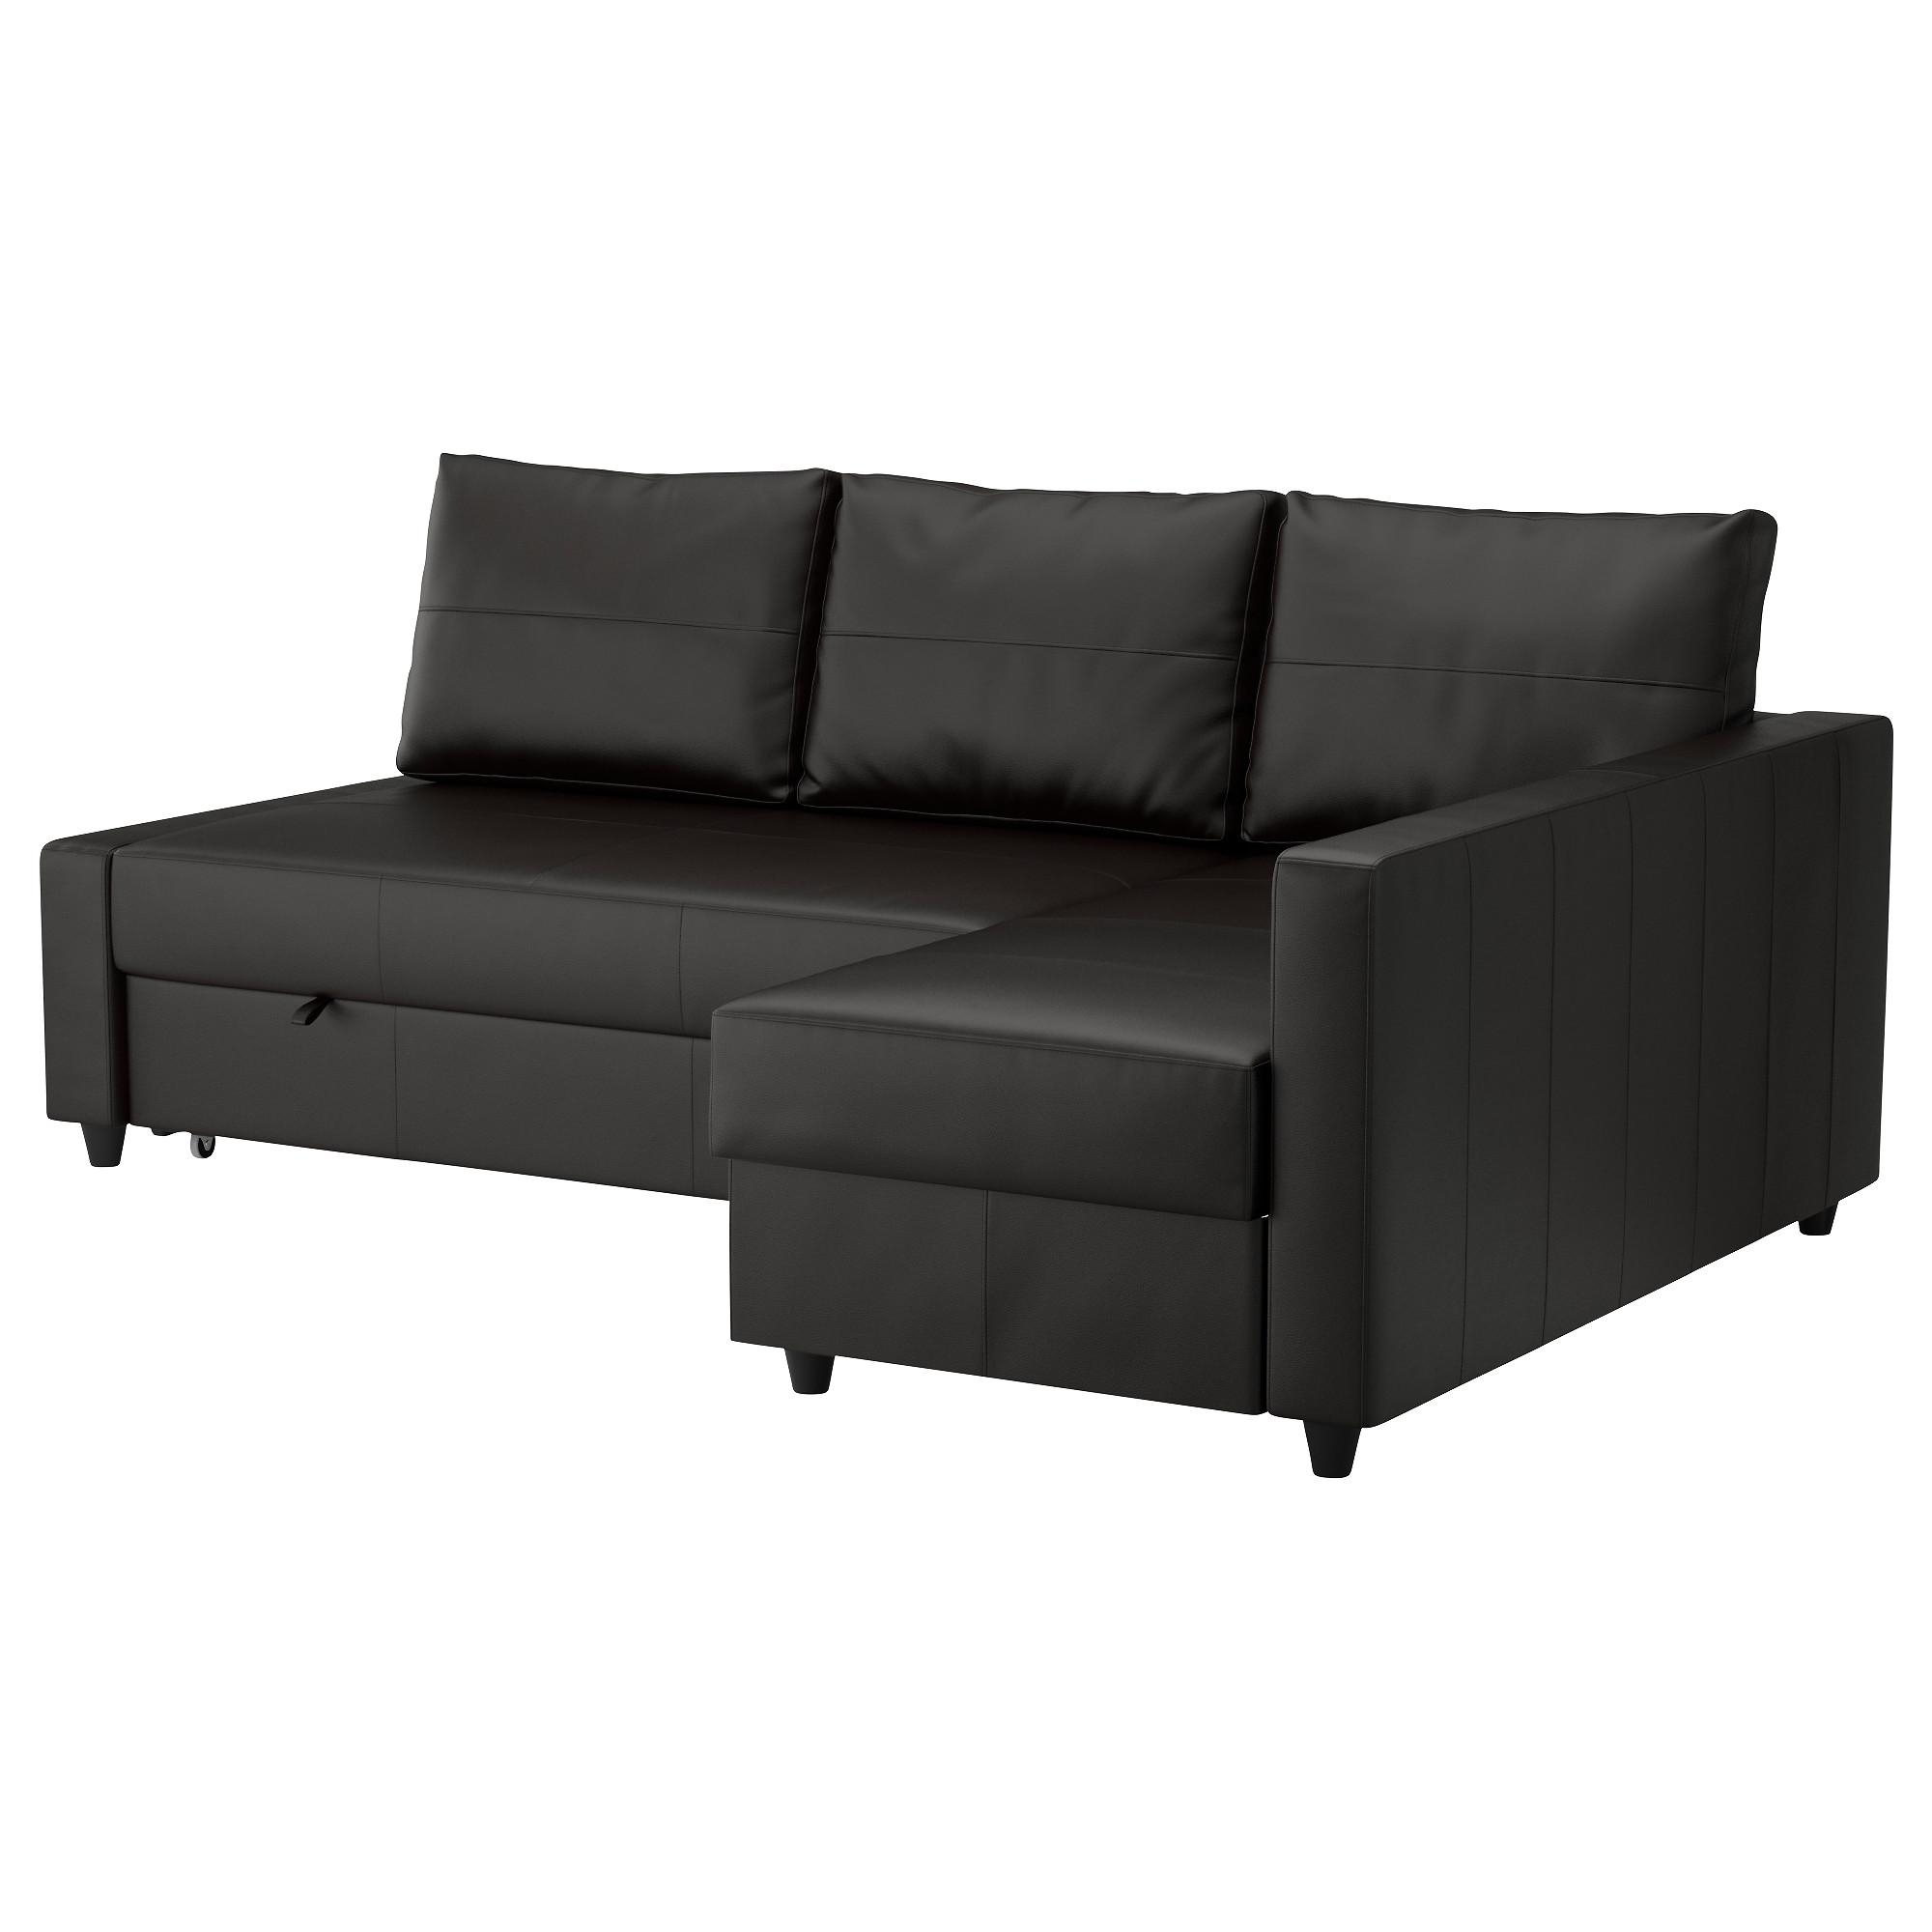 Friheten Sleeper Sectional,3 Seat W/storage – Bomstad Black – Ikea With Regard To Ikea Storage Sofa Bed (View 9 of 20)